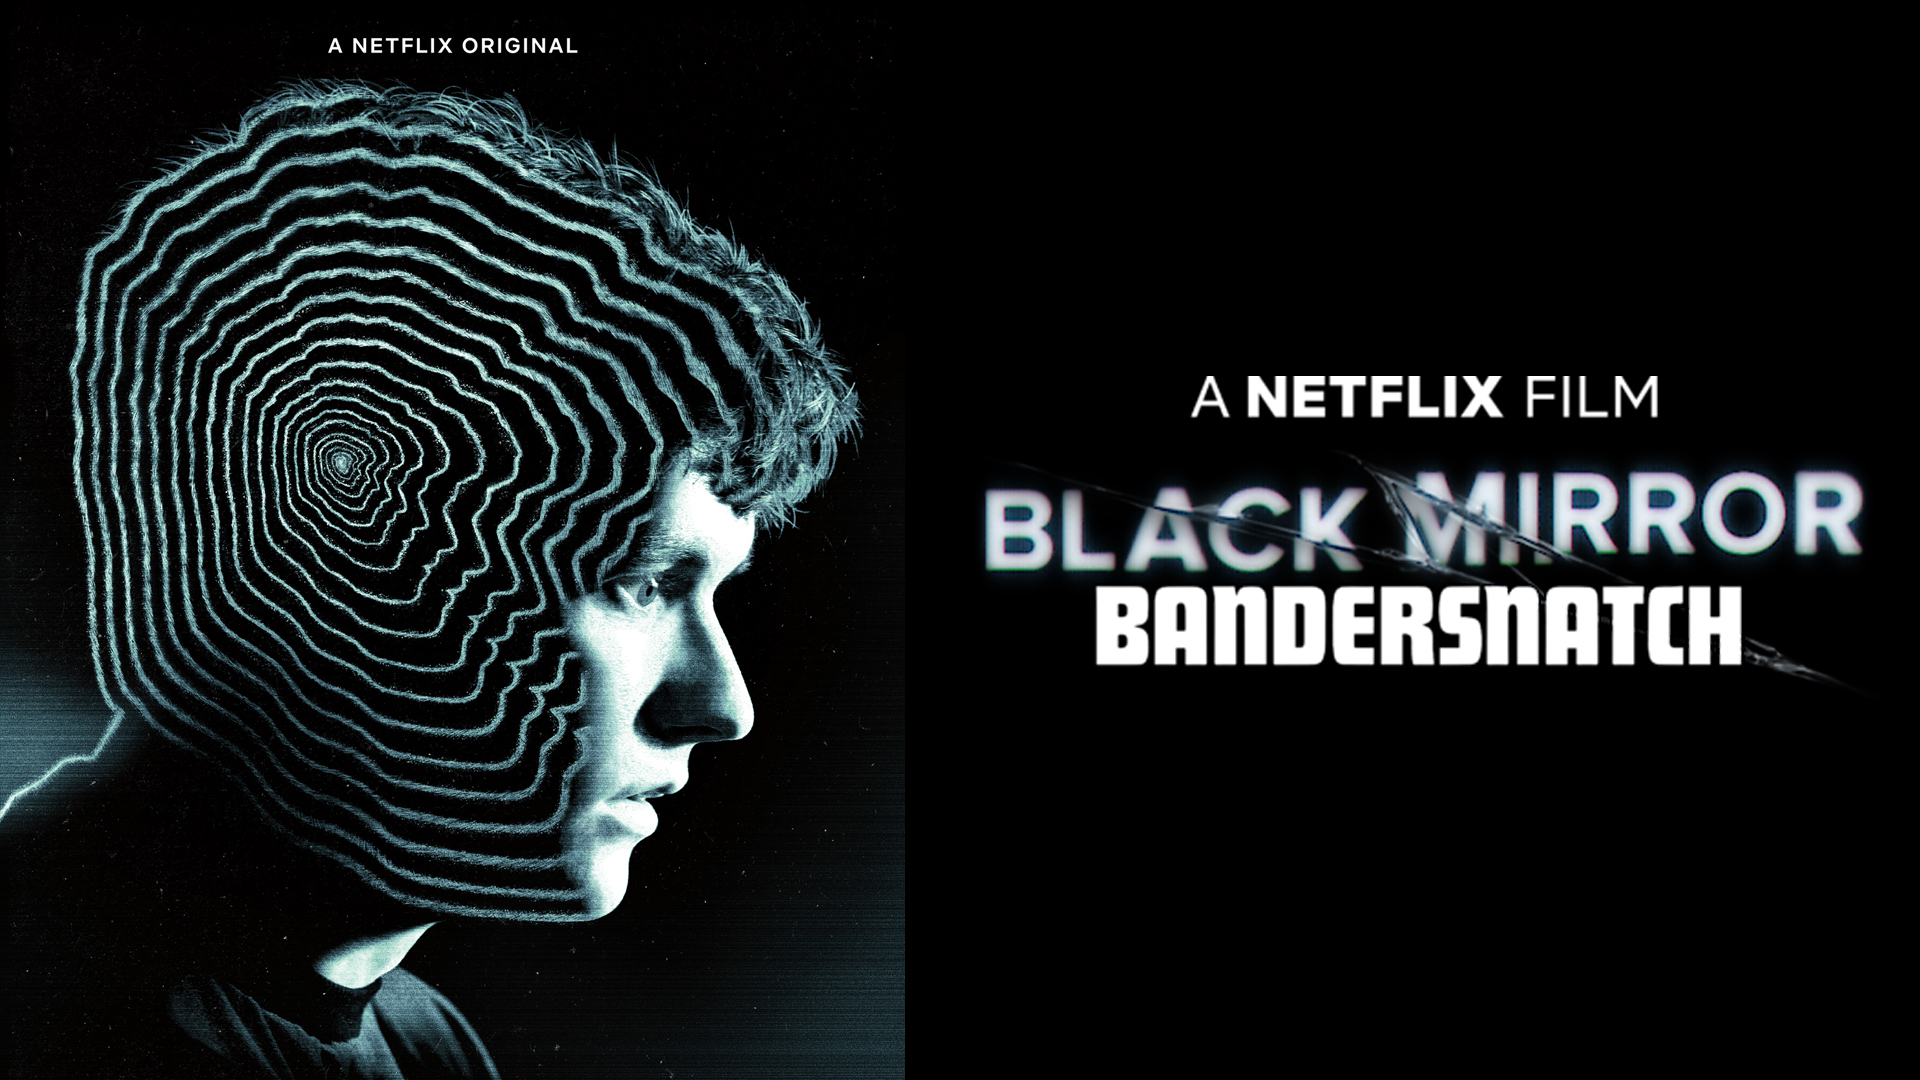 Black Mirror: Bandersnatch Isn't Perfect, But Still Succeeds